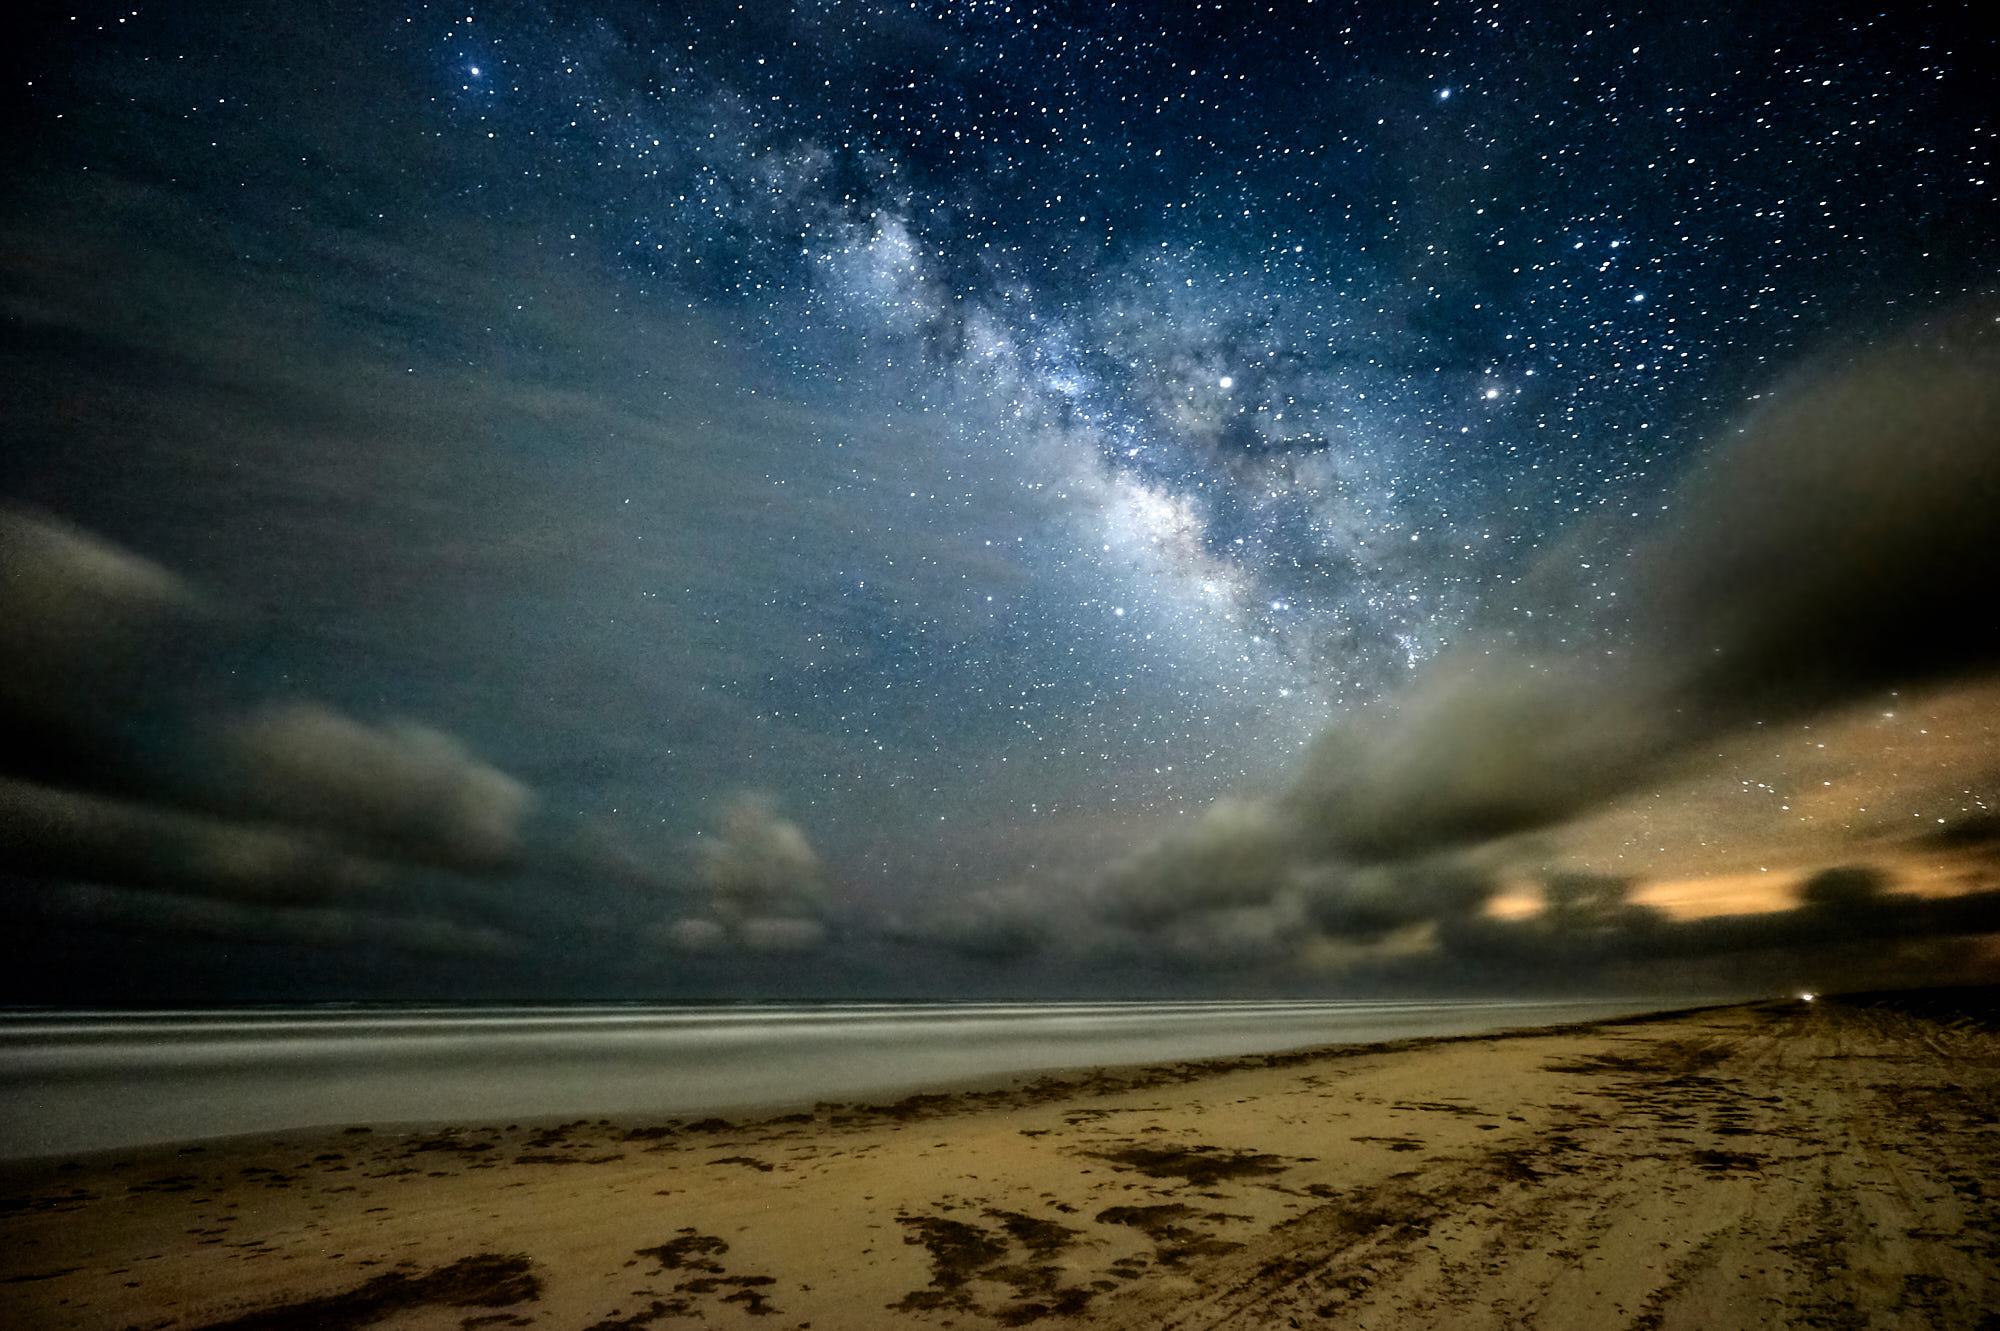 A Milky Way Photo with Clouds